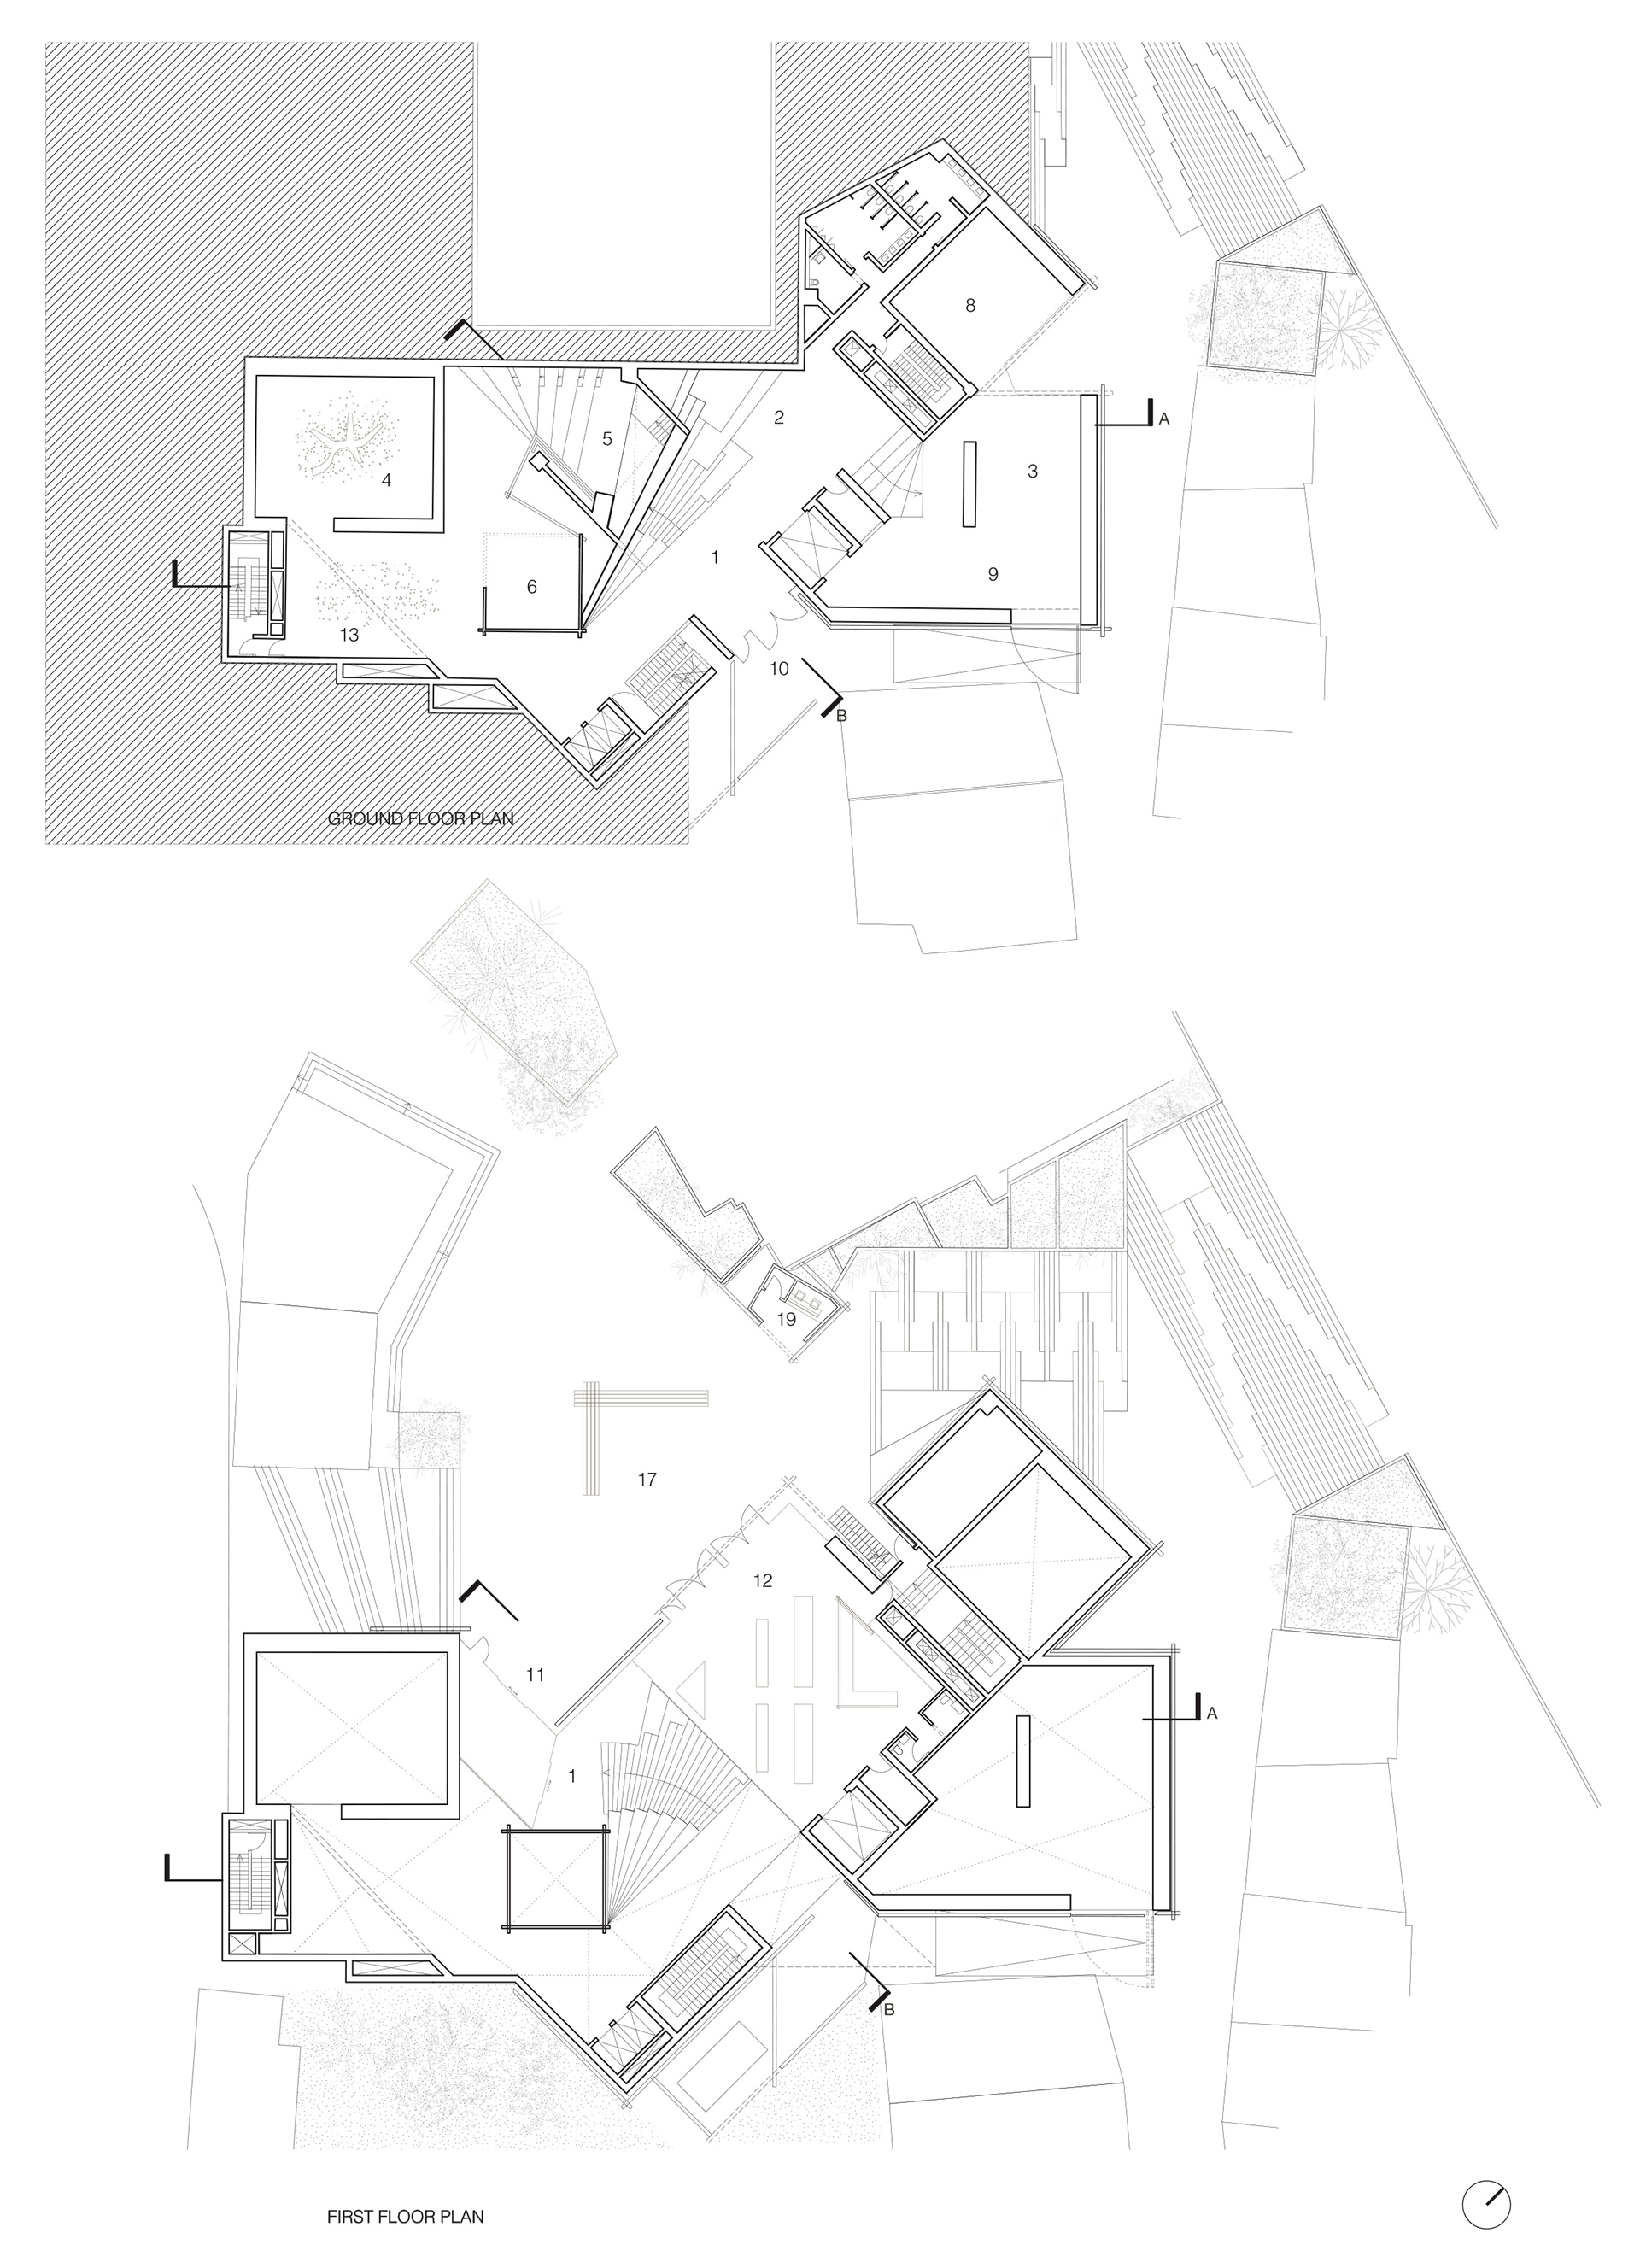 Ground and First Floor Plans - OMM | Odunpazari Modern Museum| Kengo Kuma and Associates | STIR